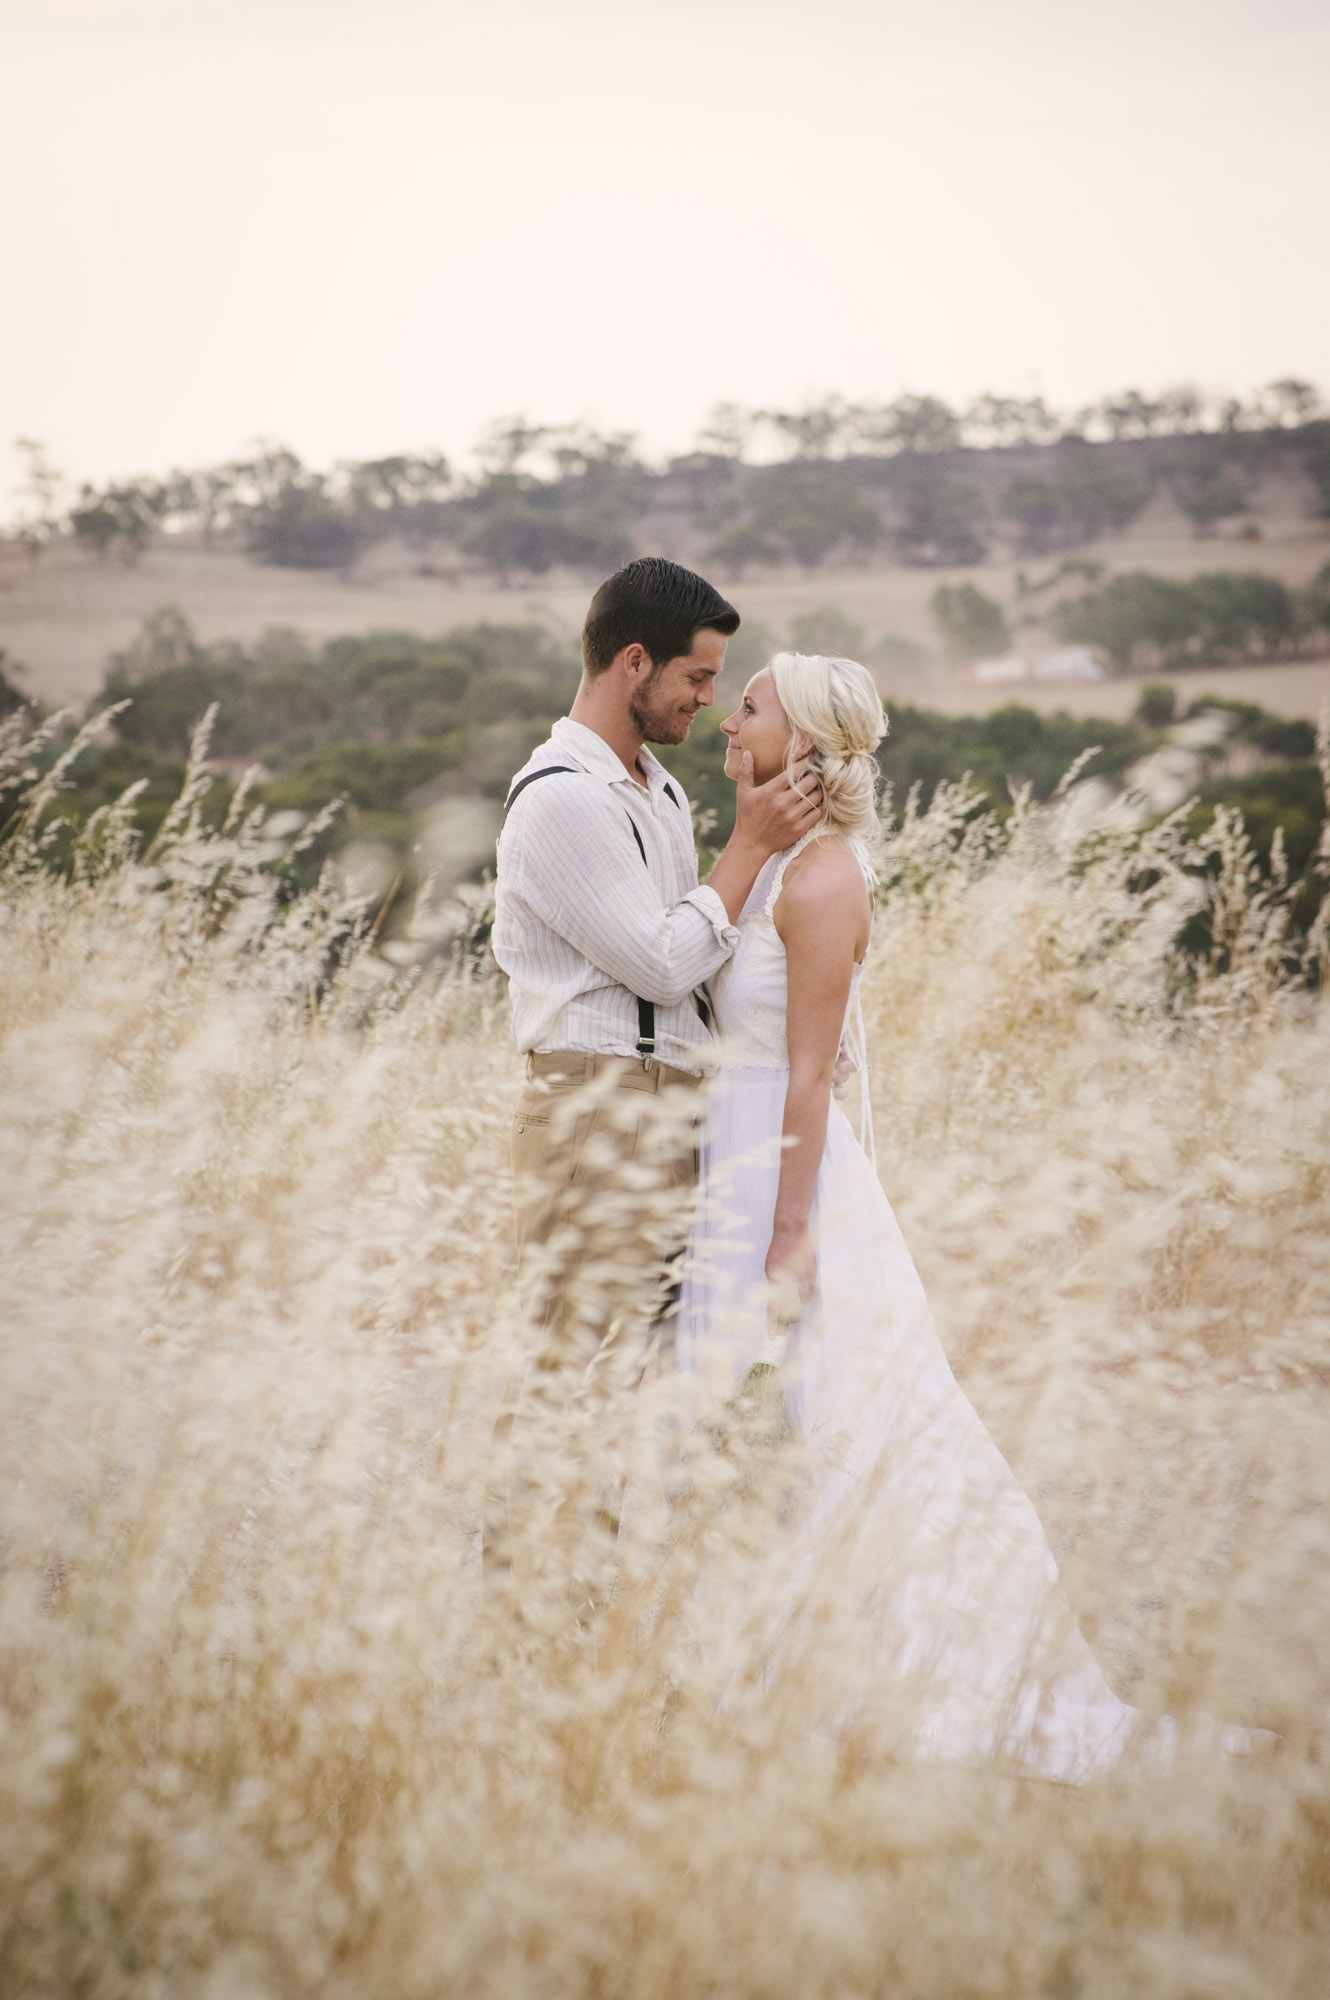 Angie-Roe-Photography-Wedding-Perth-Northam-Wheatbelt-Country-Rural (24).jpg